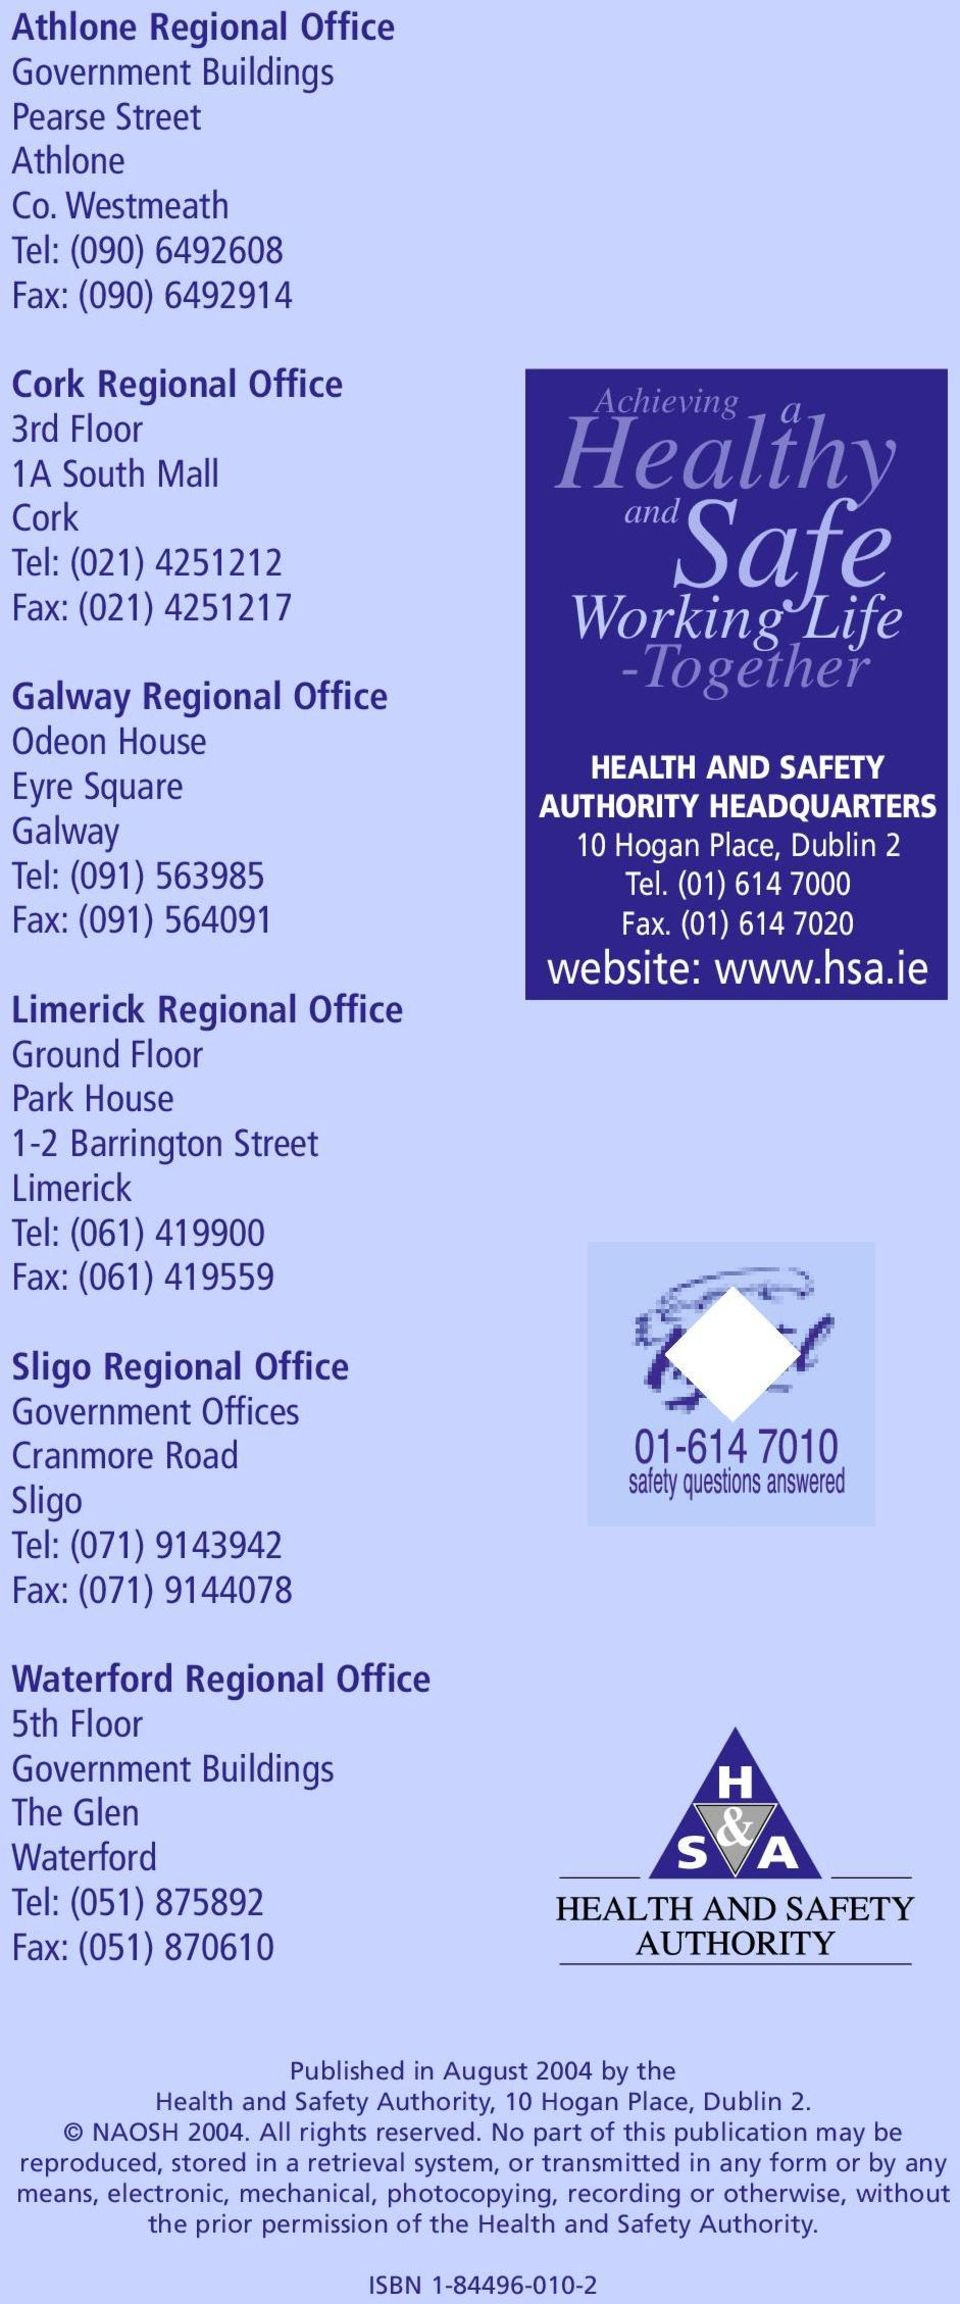 (091) 563985 Fax: (091) 564091 Limerick Regional Office Ground Floor Park House 1-2 Barrington Street Limerick Tel: (061) 419900 Fax: (061) 419559 Achieving a Healthy and Safe Working Life -Together